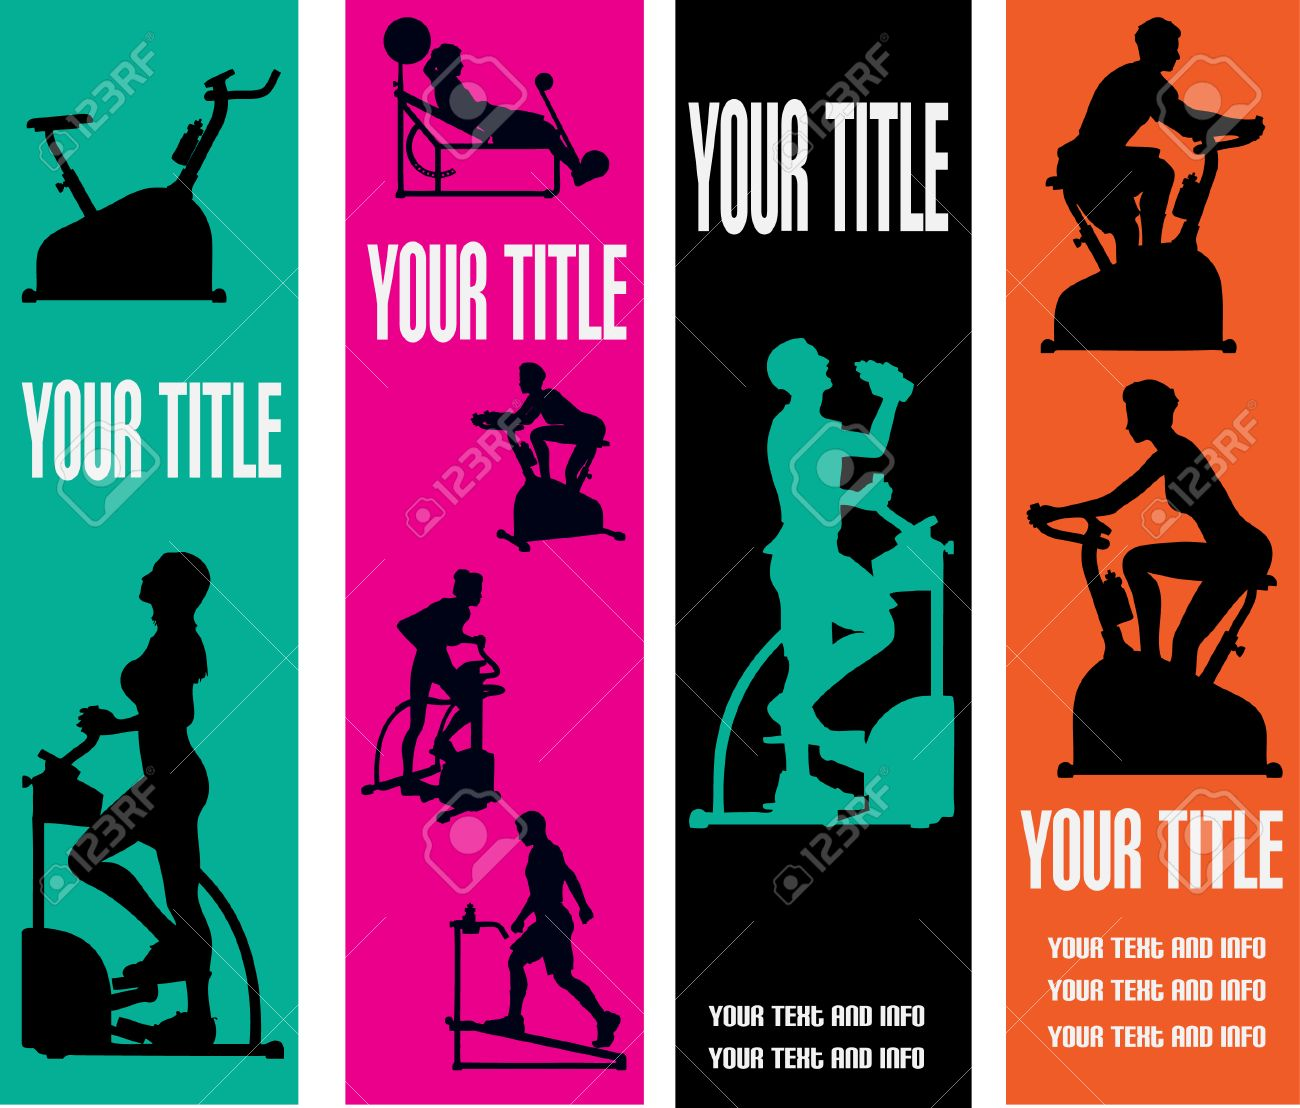 Exercise Web Banner Templates - 4503680